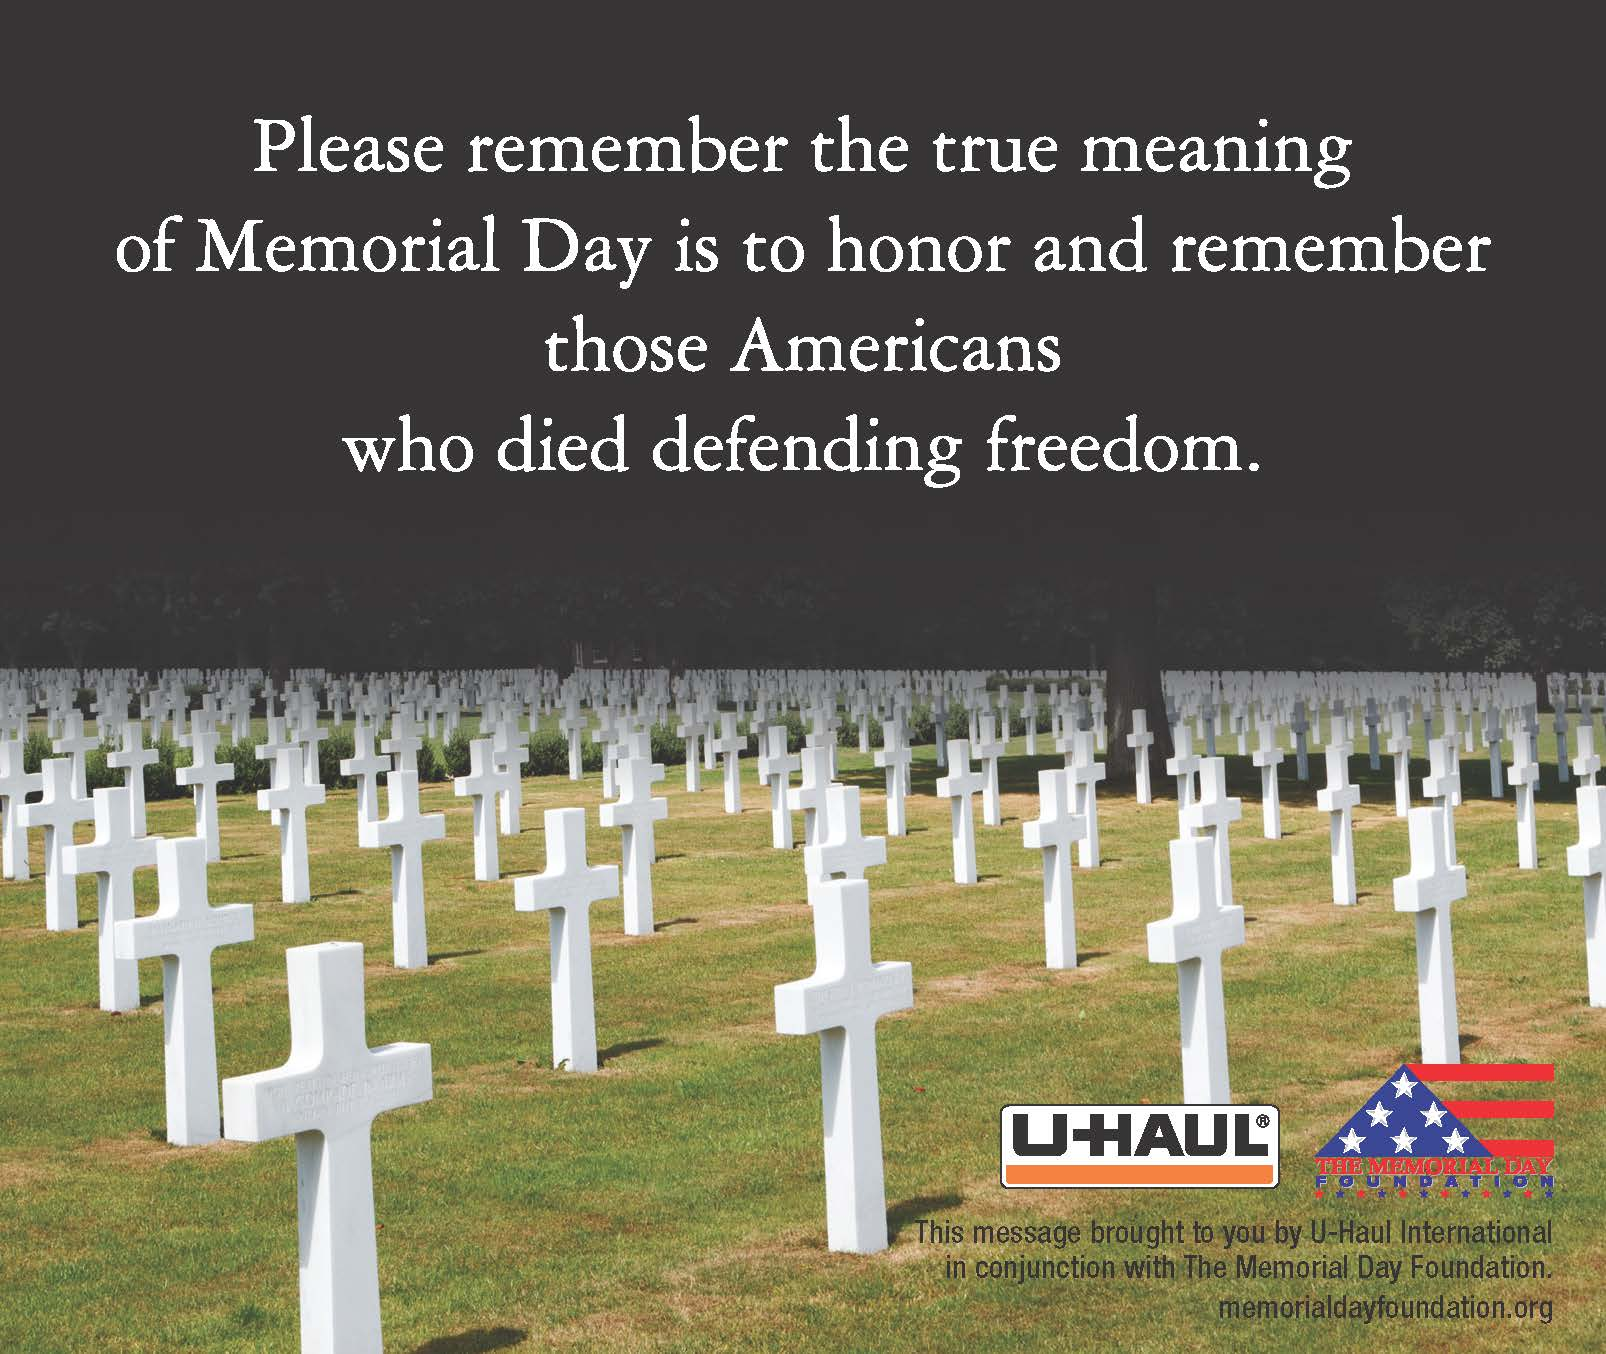 U Haul About The True Meaning Of Memorial Day